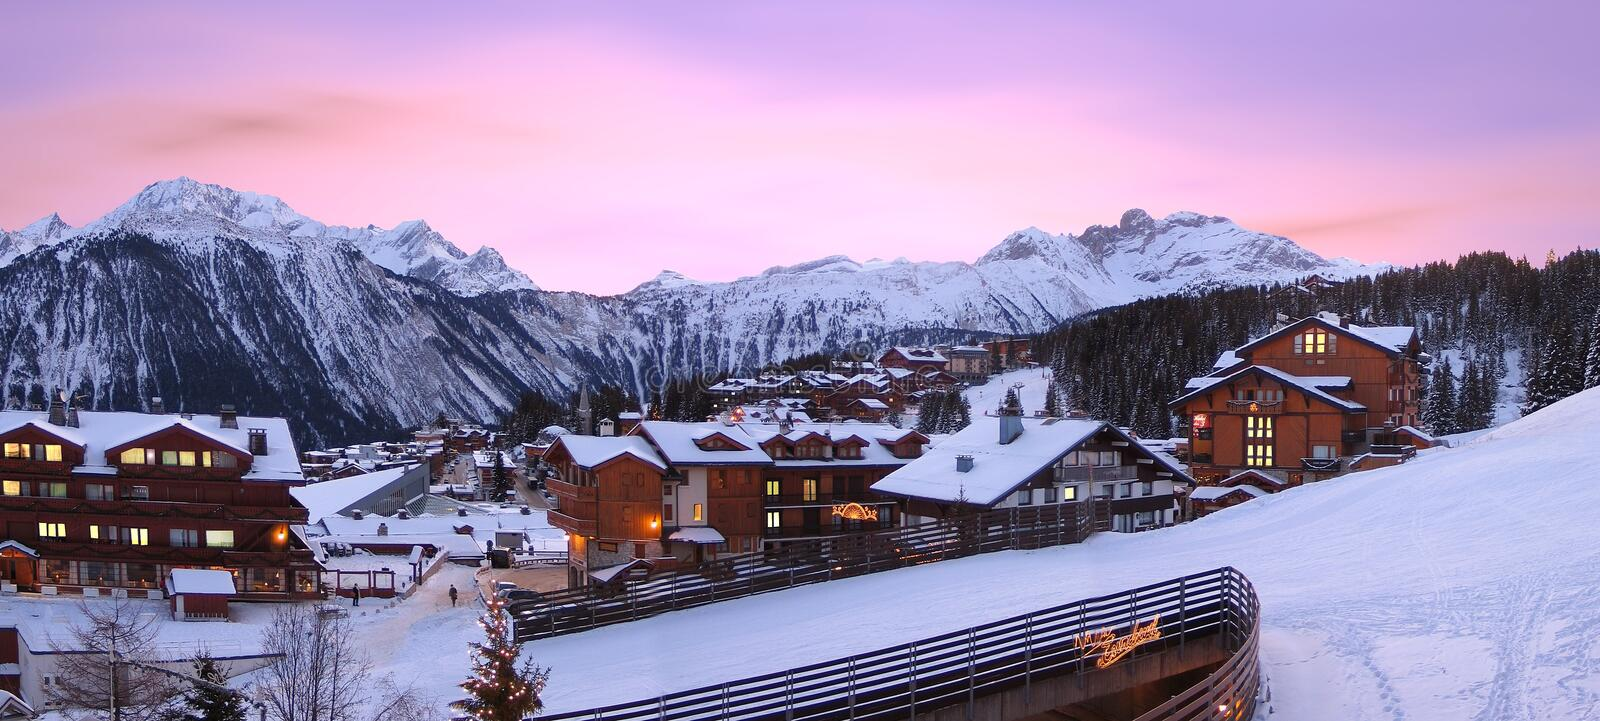 Ski resort, of Courchevel in France, stock photo